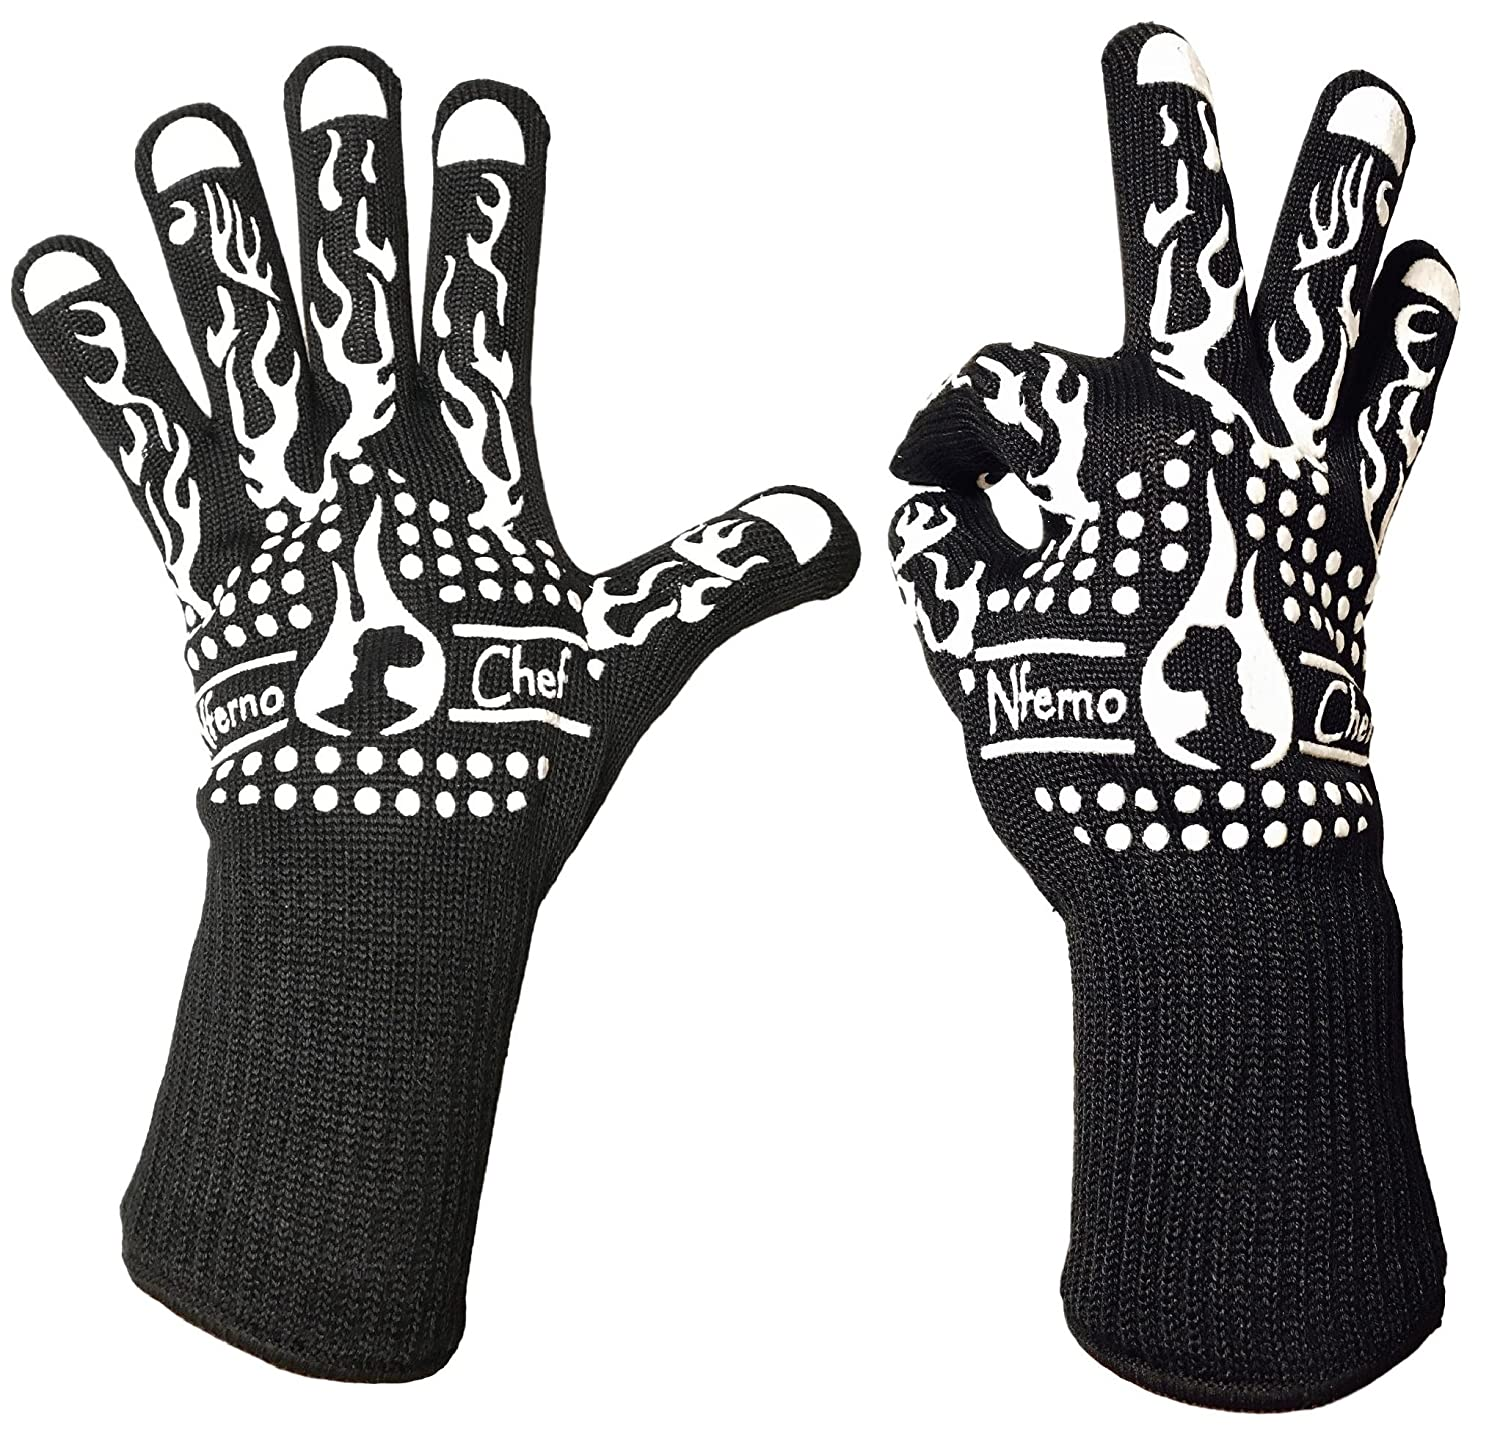 Heat Resistant Cooking Gloves for BBQ, Grilling or Baking by Nferno Chef | Made with Aramid Kevlar Fibers for Protection to 932°F, Coated with Protective Silicone & Lined with Cotton (White Pair)